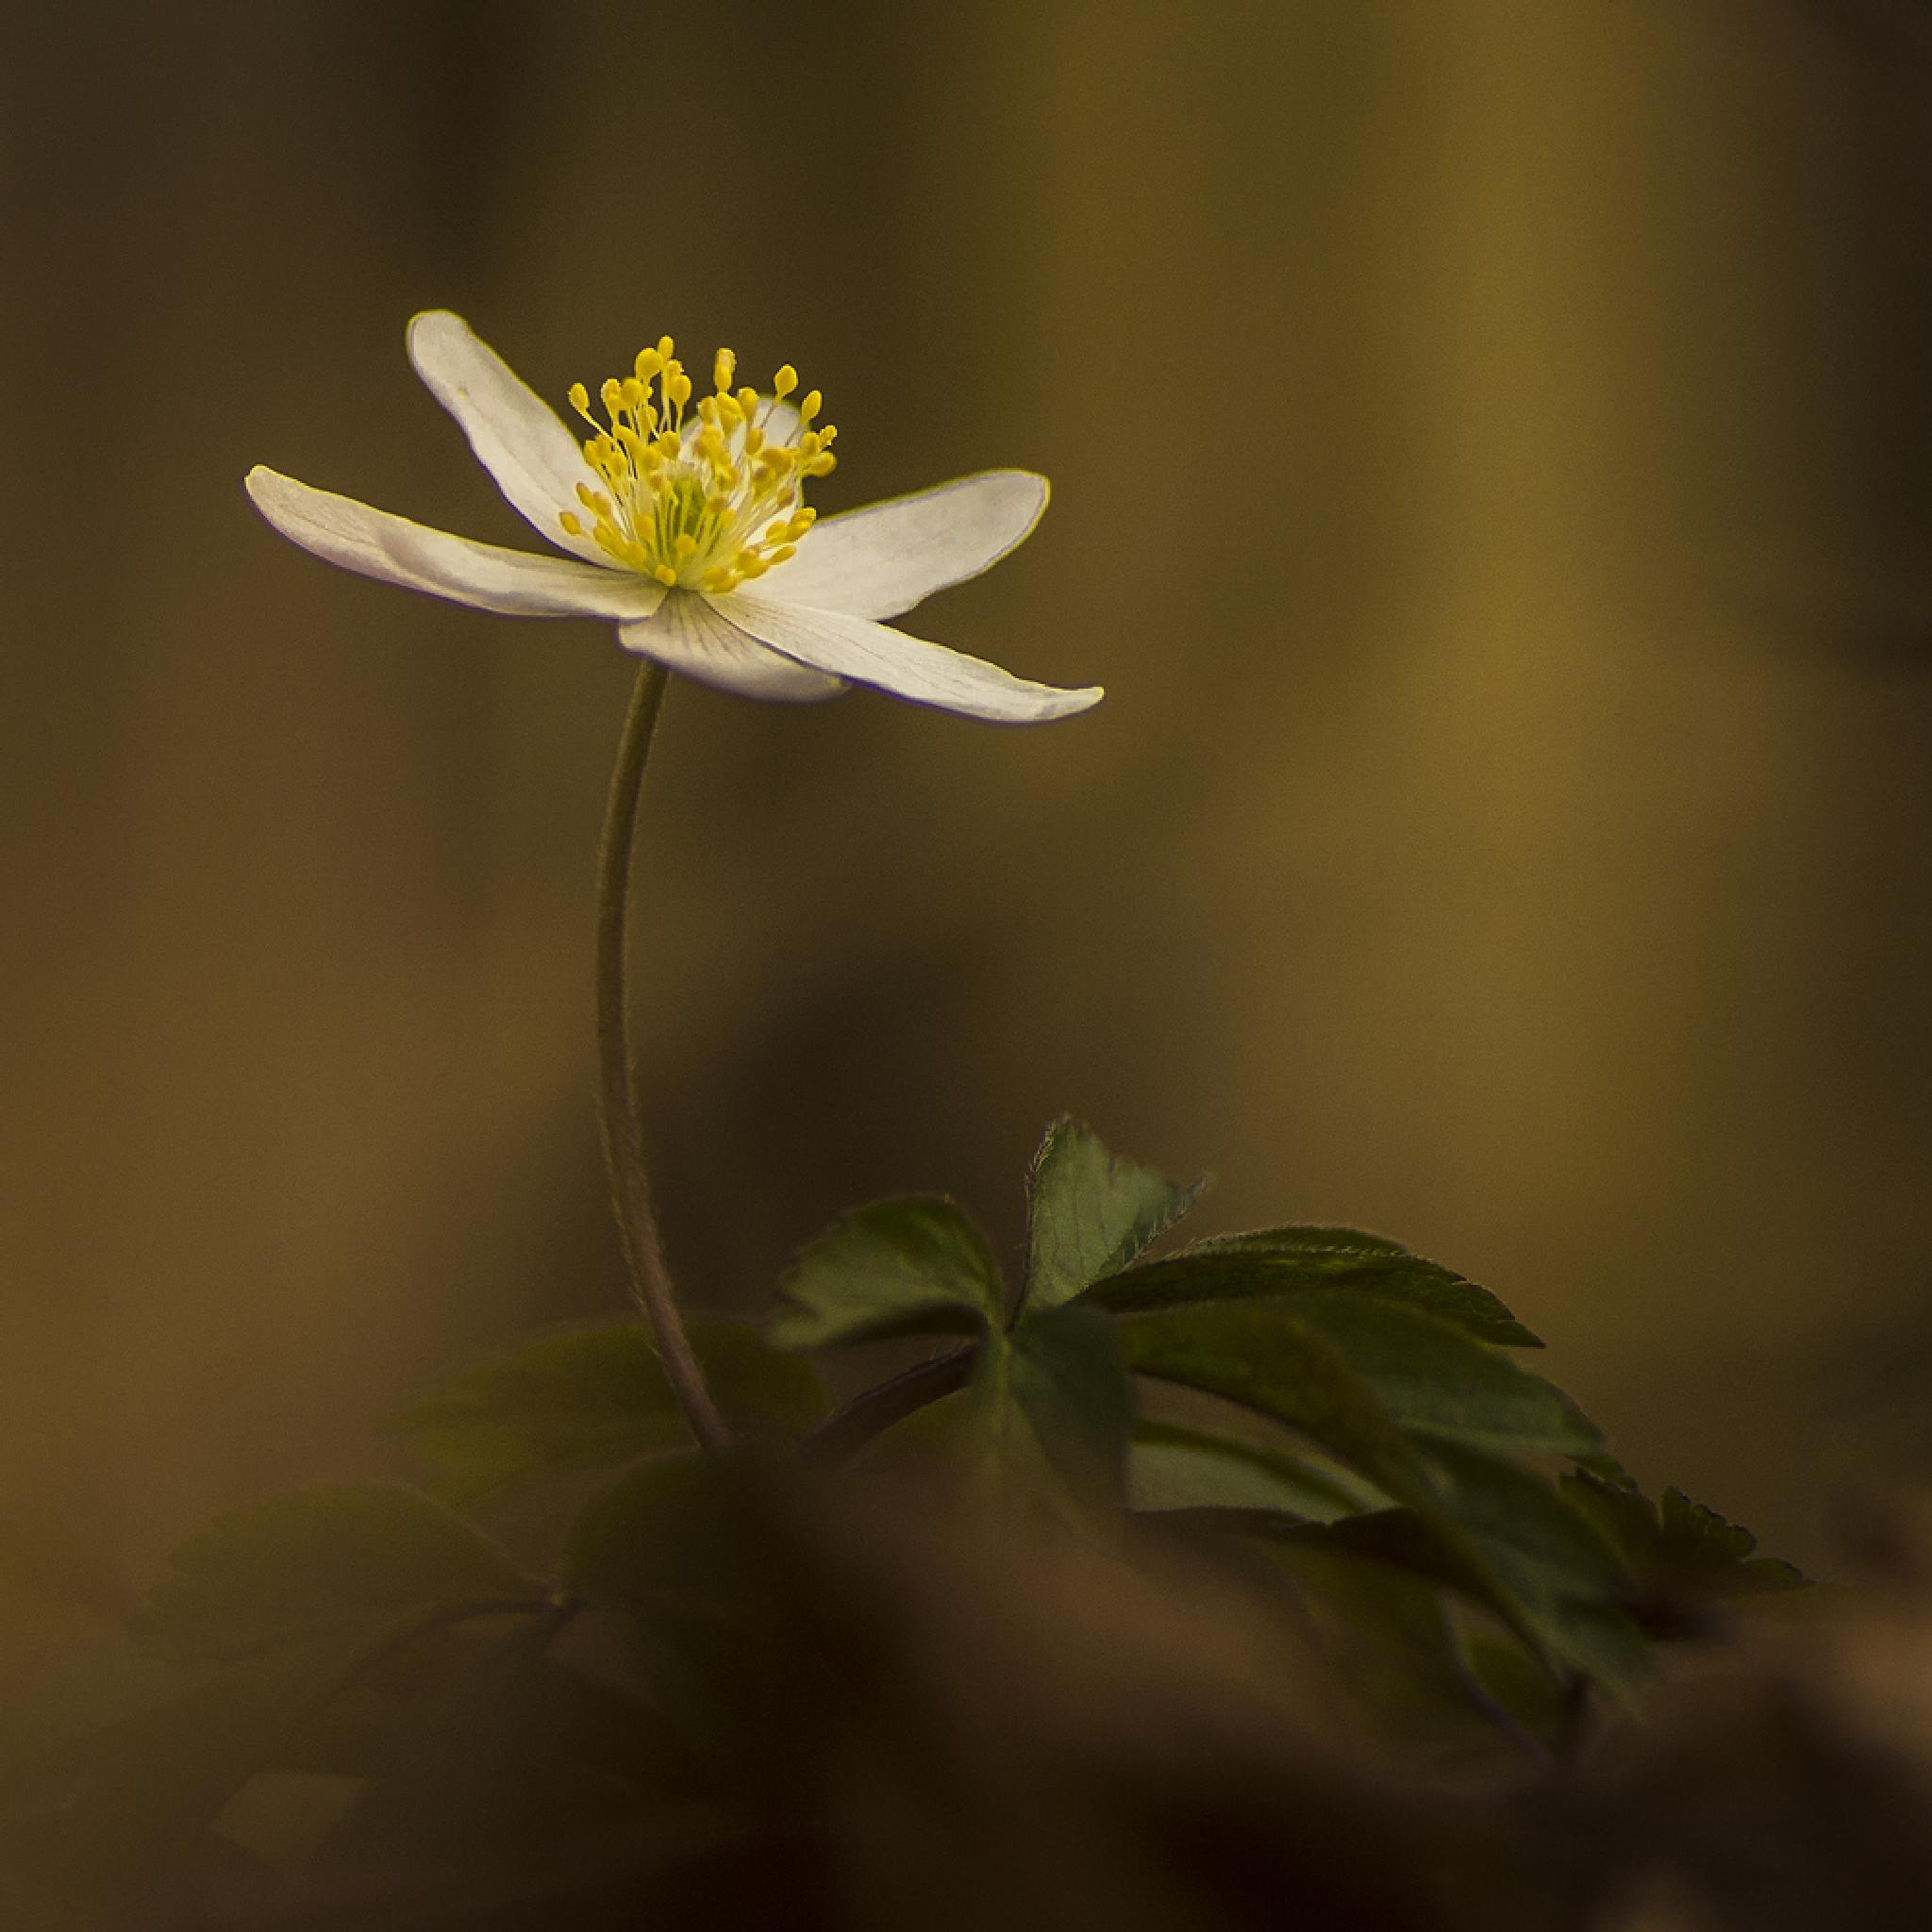 Alone in the dark by Peter Samuelsson